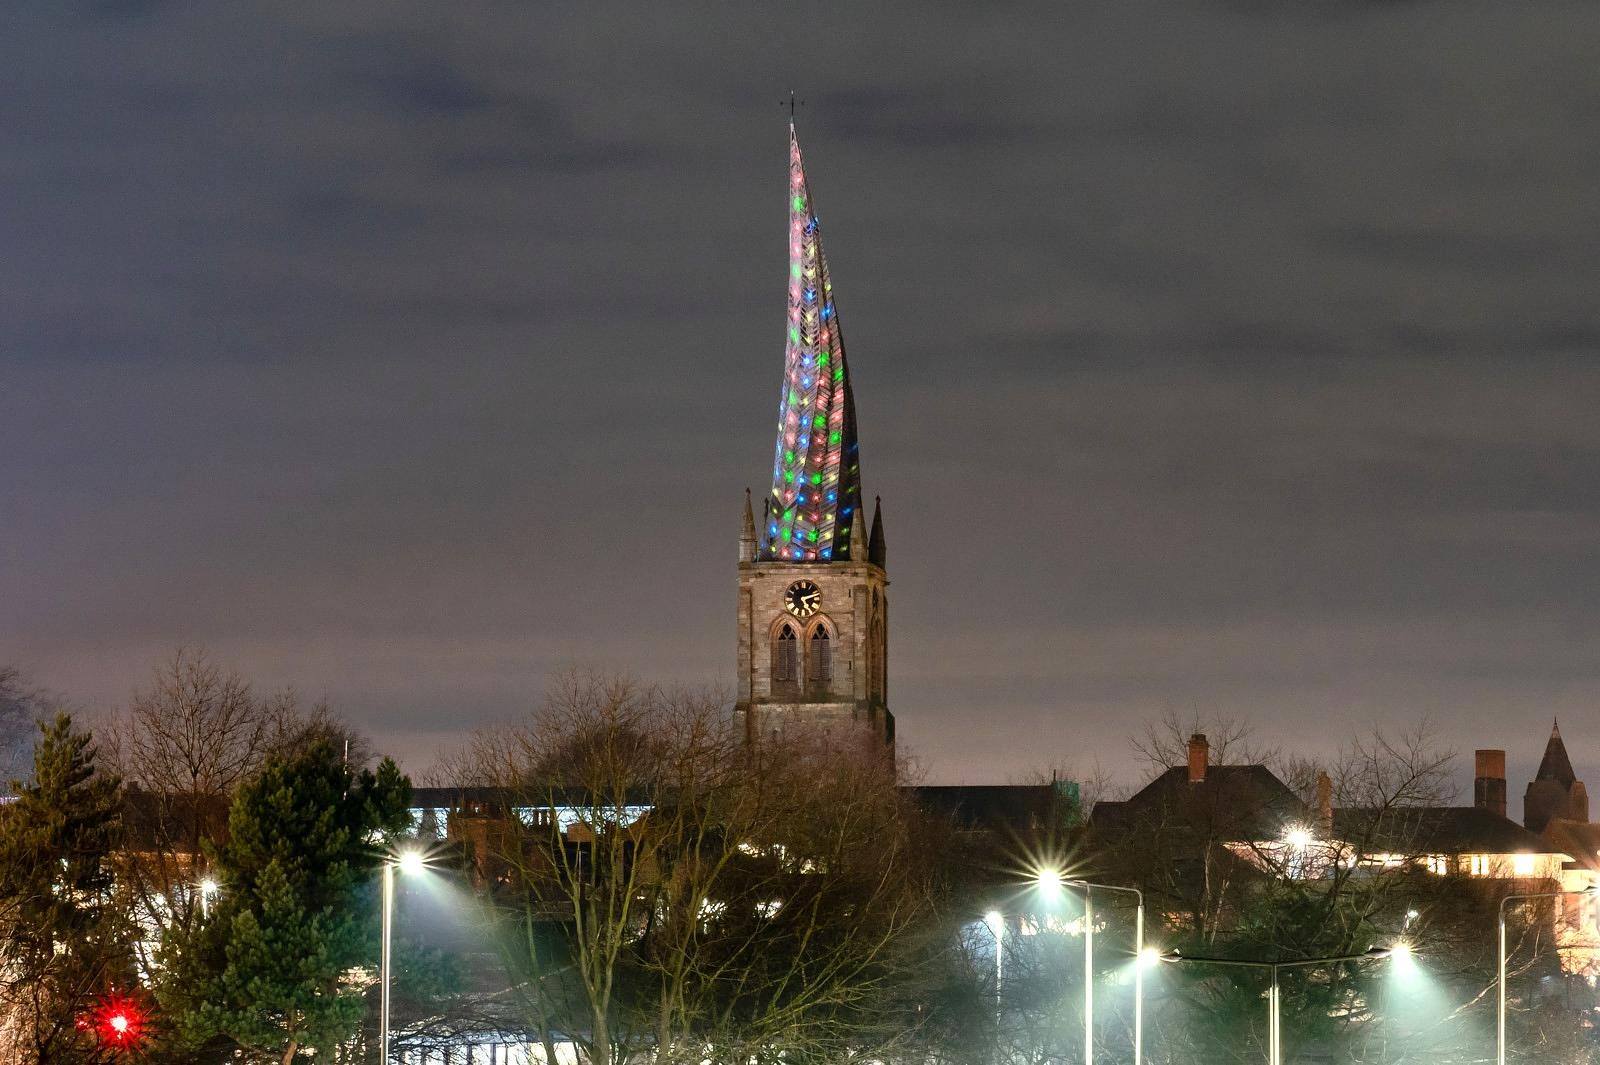 Festival of light in Chesterfield